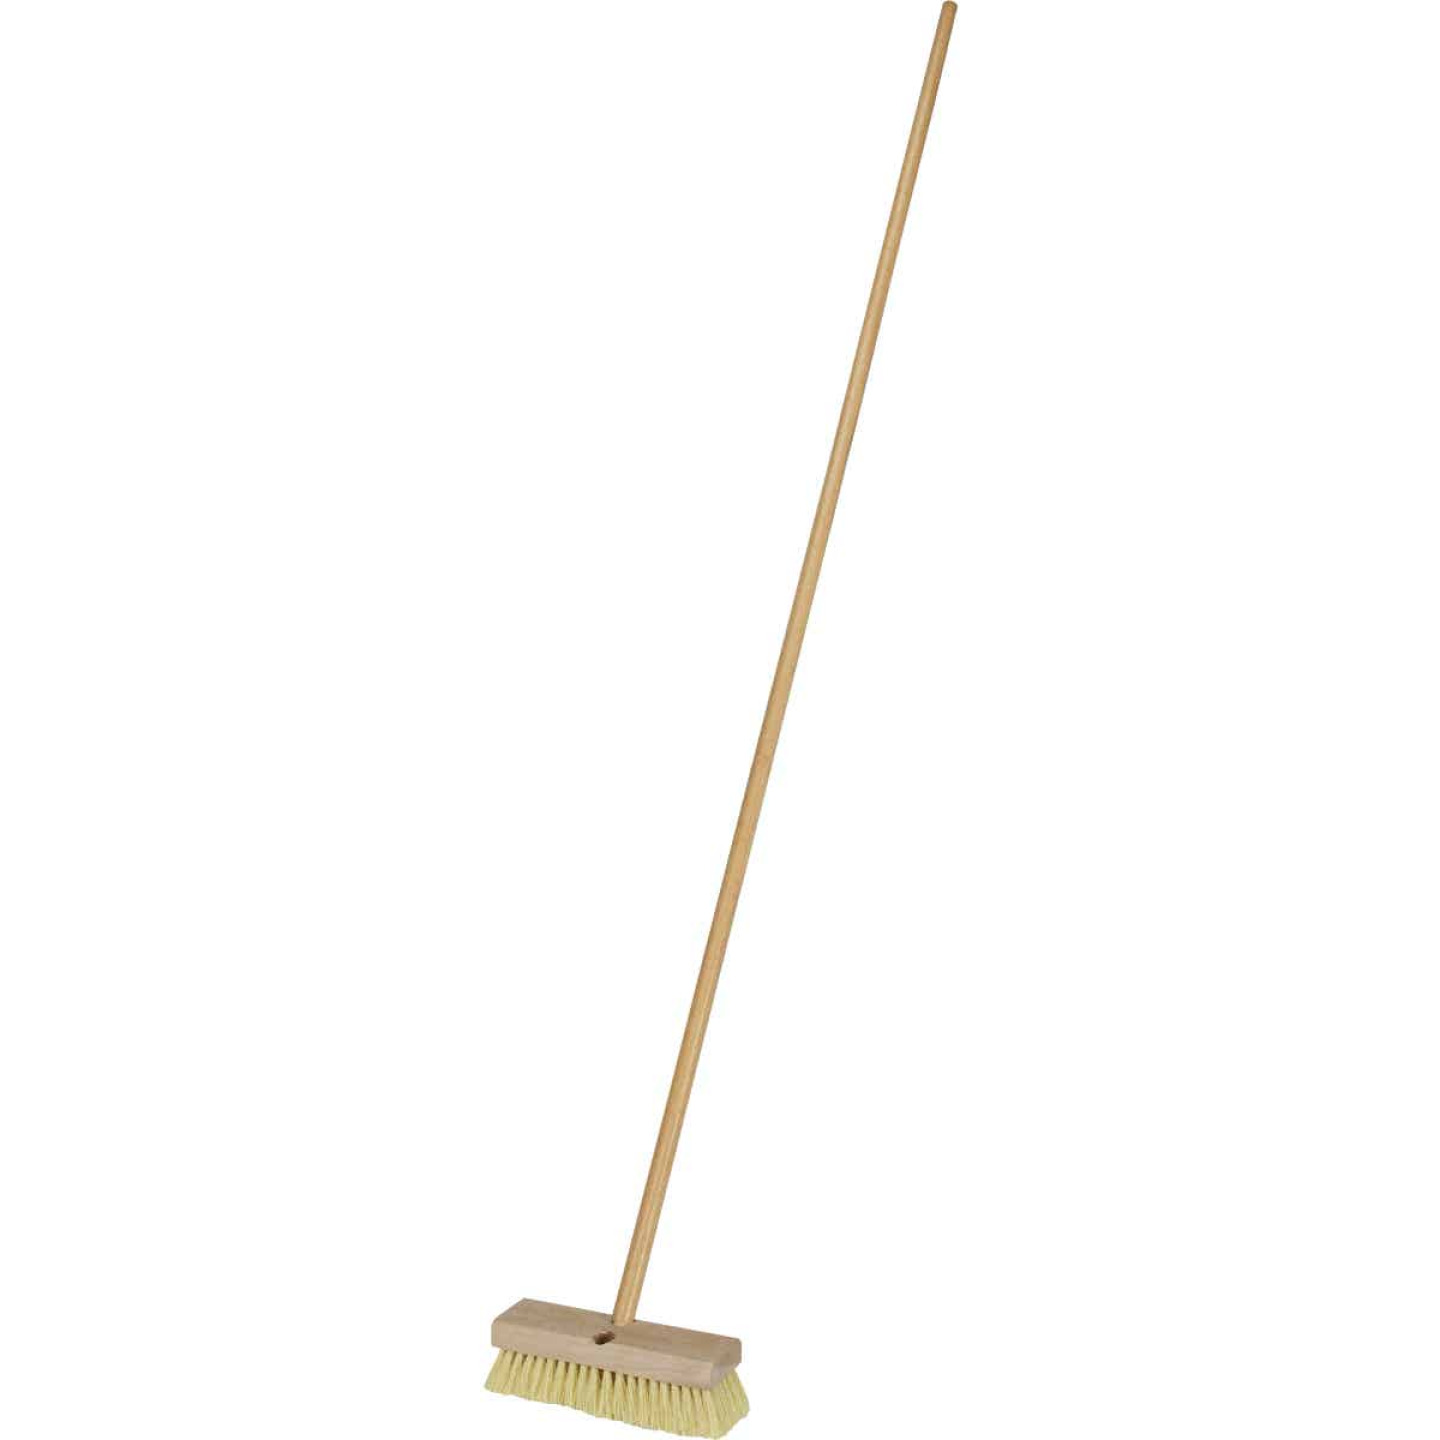 DQB 10 In. Deck Scrub Brush Image 2